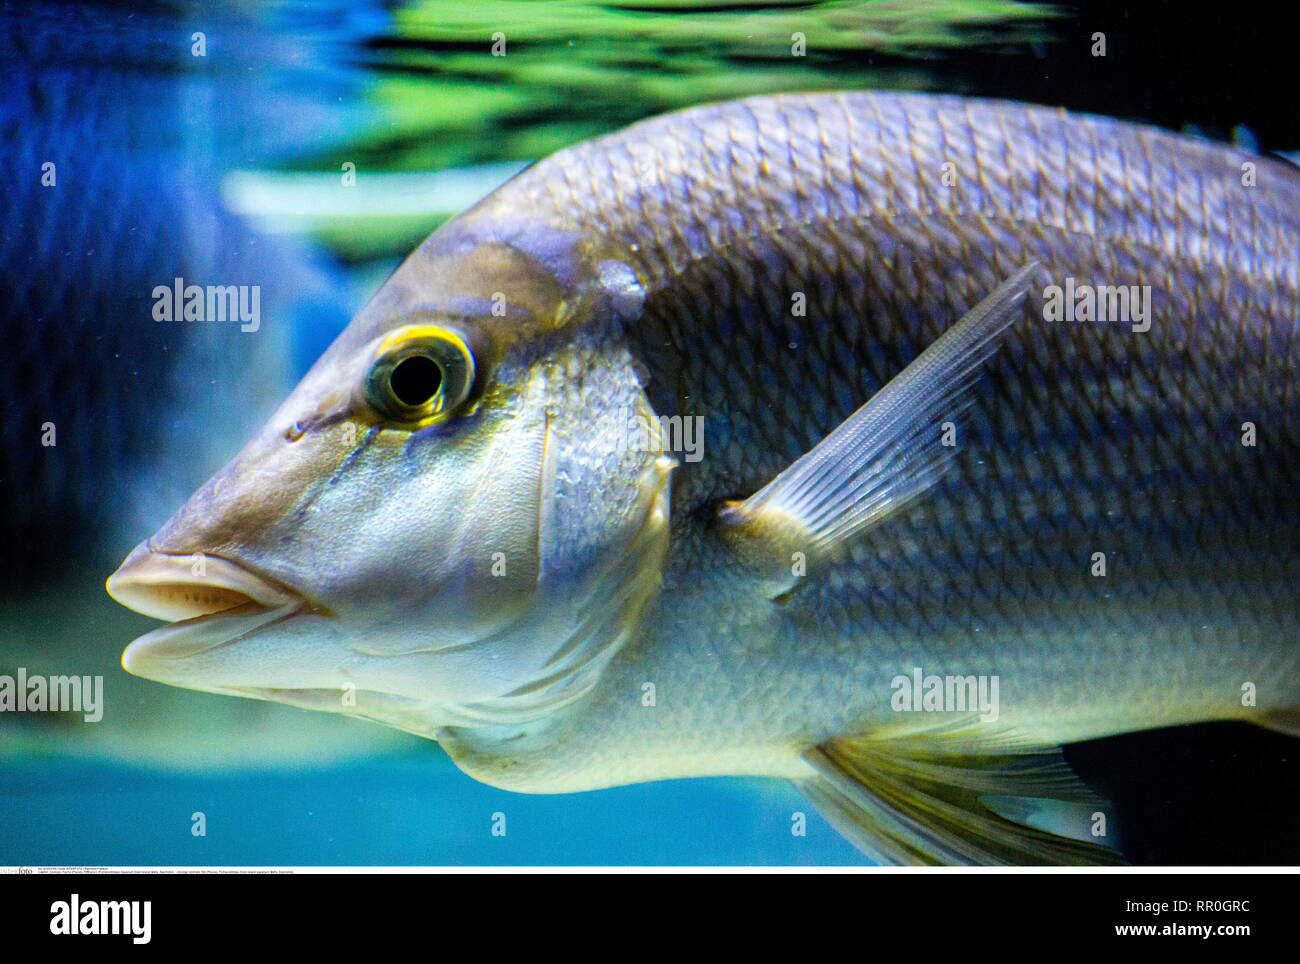 zoology / animals, fish (Pisces), Pomacentridae, Eden Island aquarium, Mahe, Seychelles, Additional-Rights-Clearance-Info-Not-Available - Stock Image